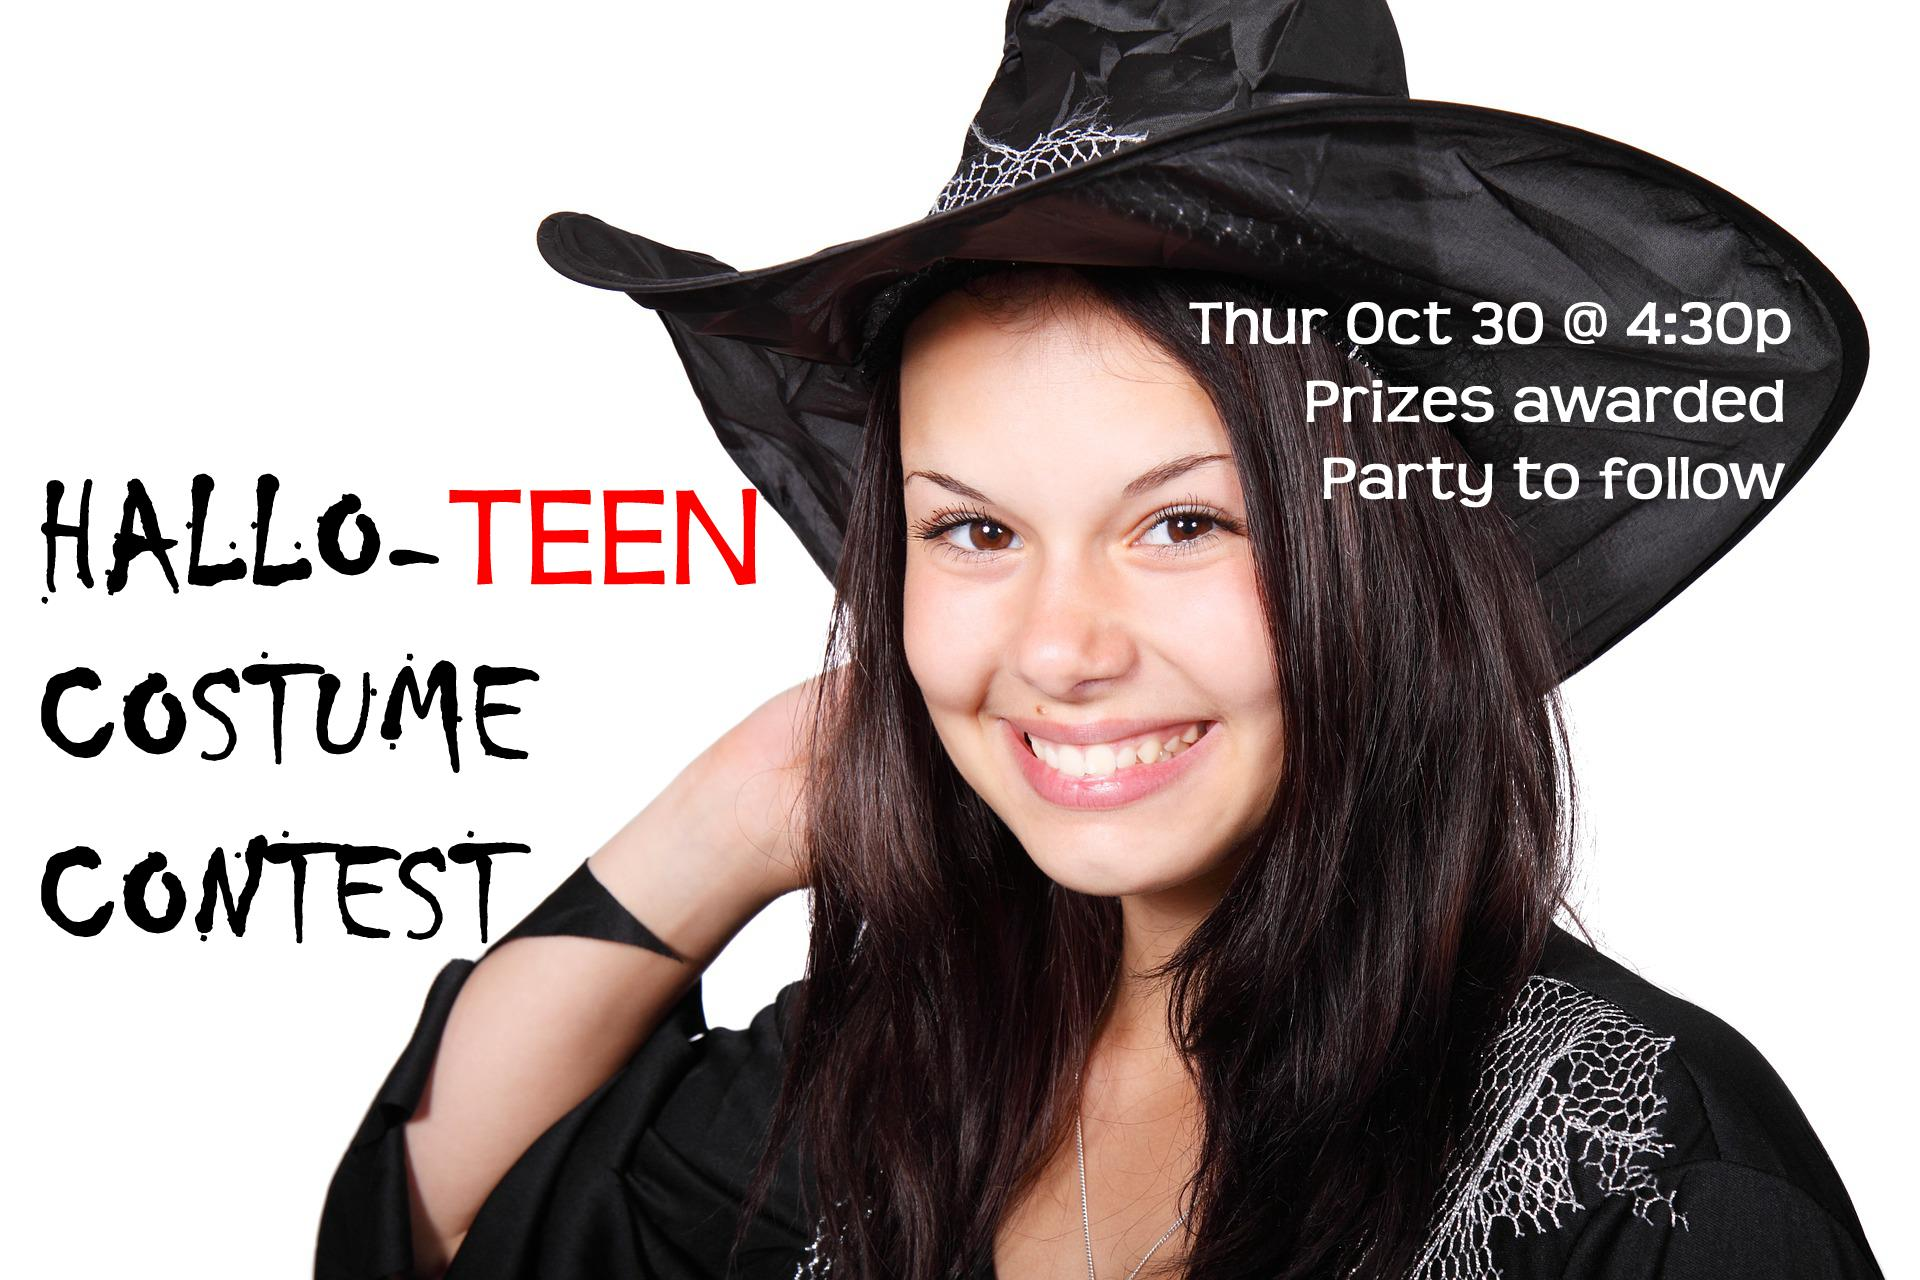 Teen Costume Contest